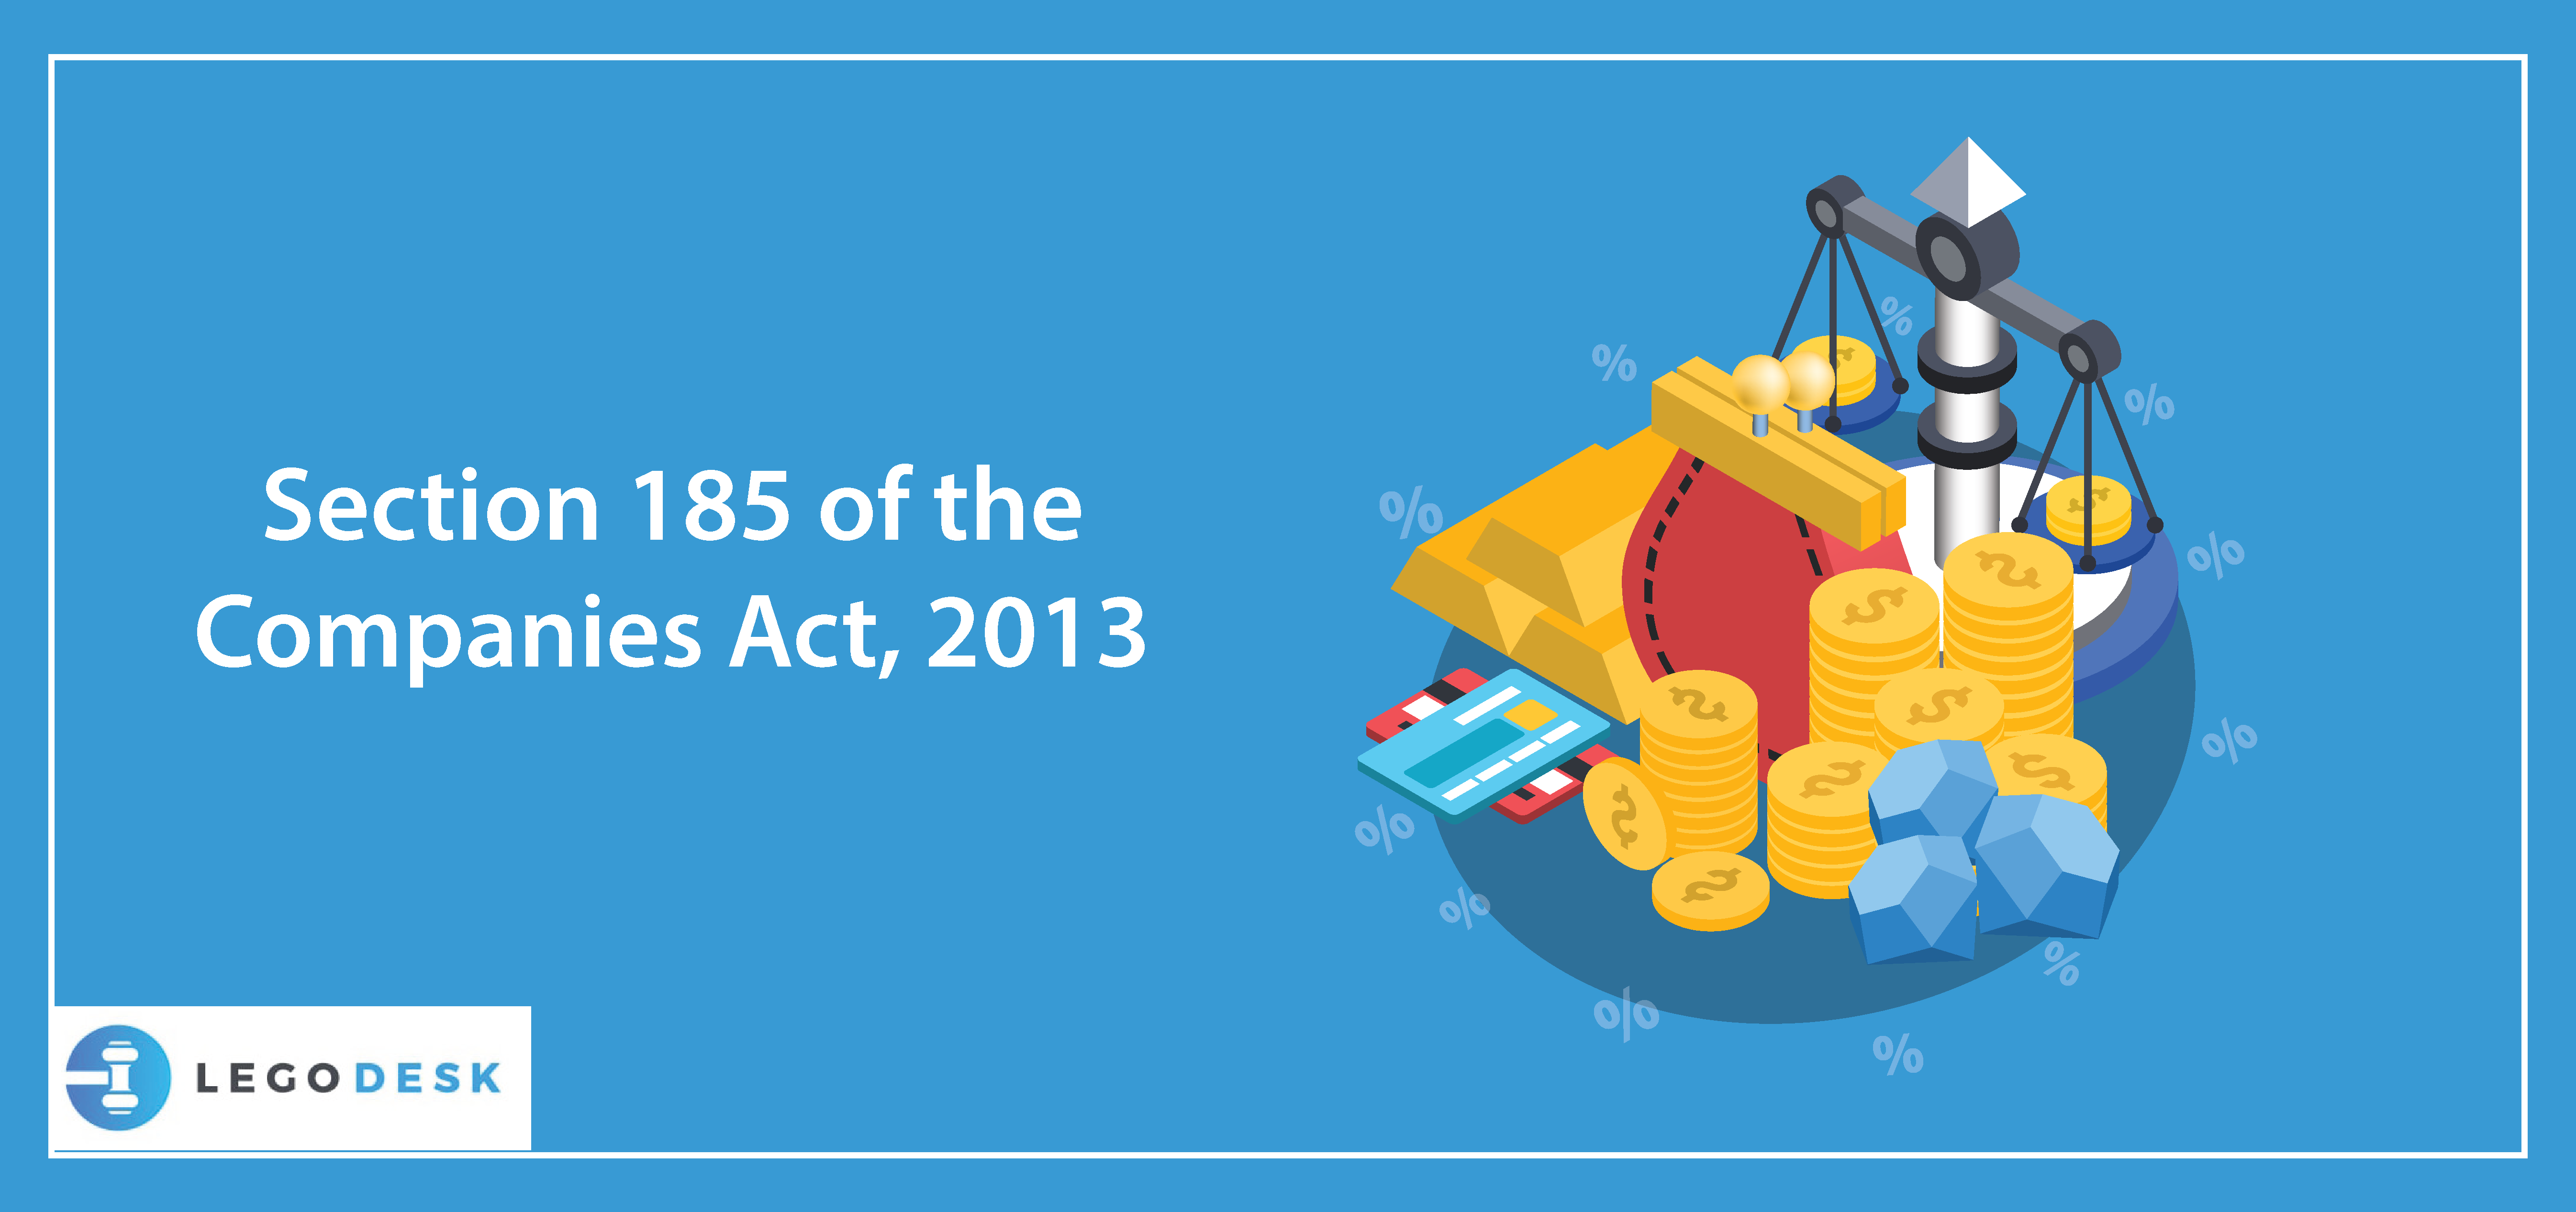 Section 185 of the Companies Act, 2013